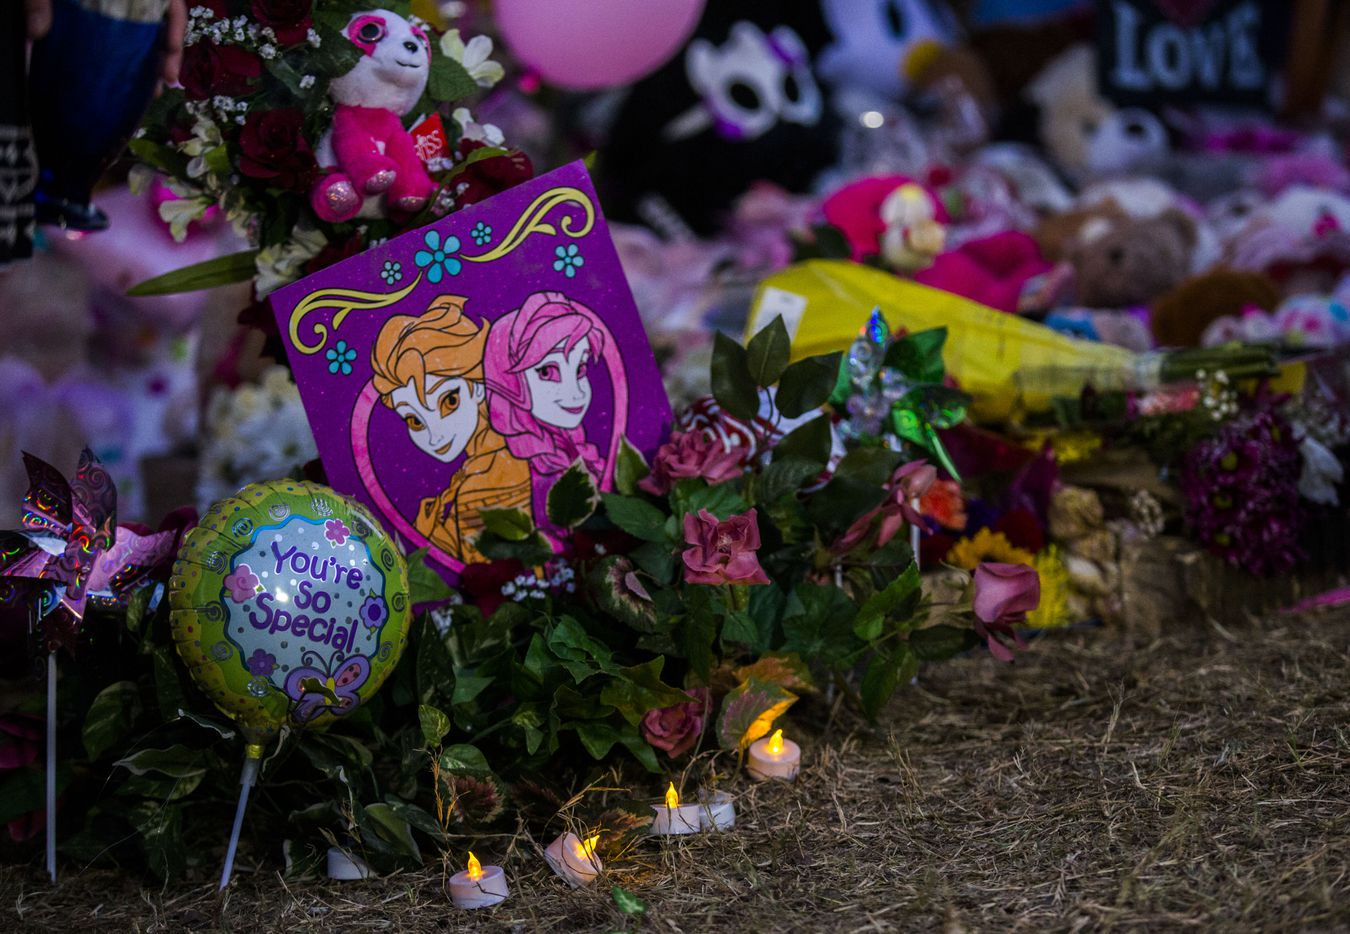 Signs, flowers, balloons and other items collect at a memorial for missing 3-year-old Sherin Mathews.